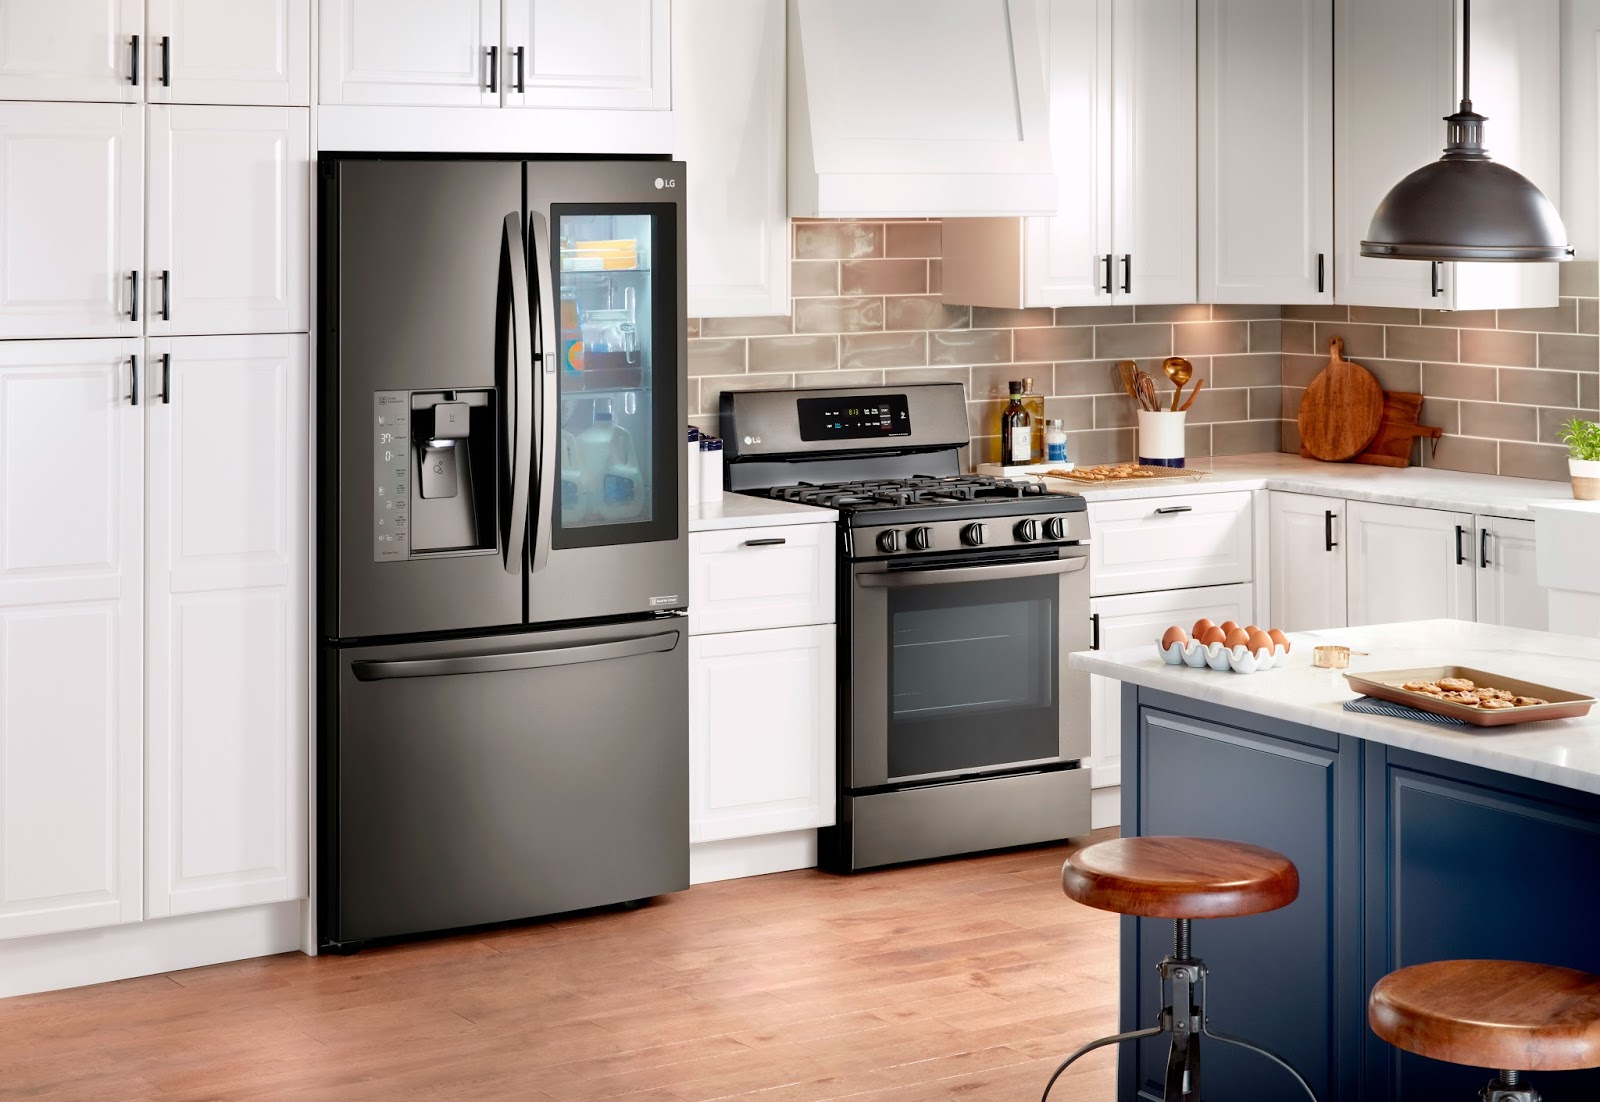 Mom Knows Best : LG Appliances Help Me Prep For The Holidays